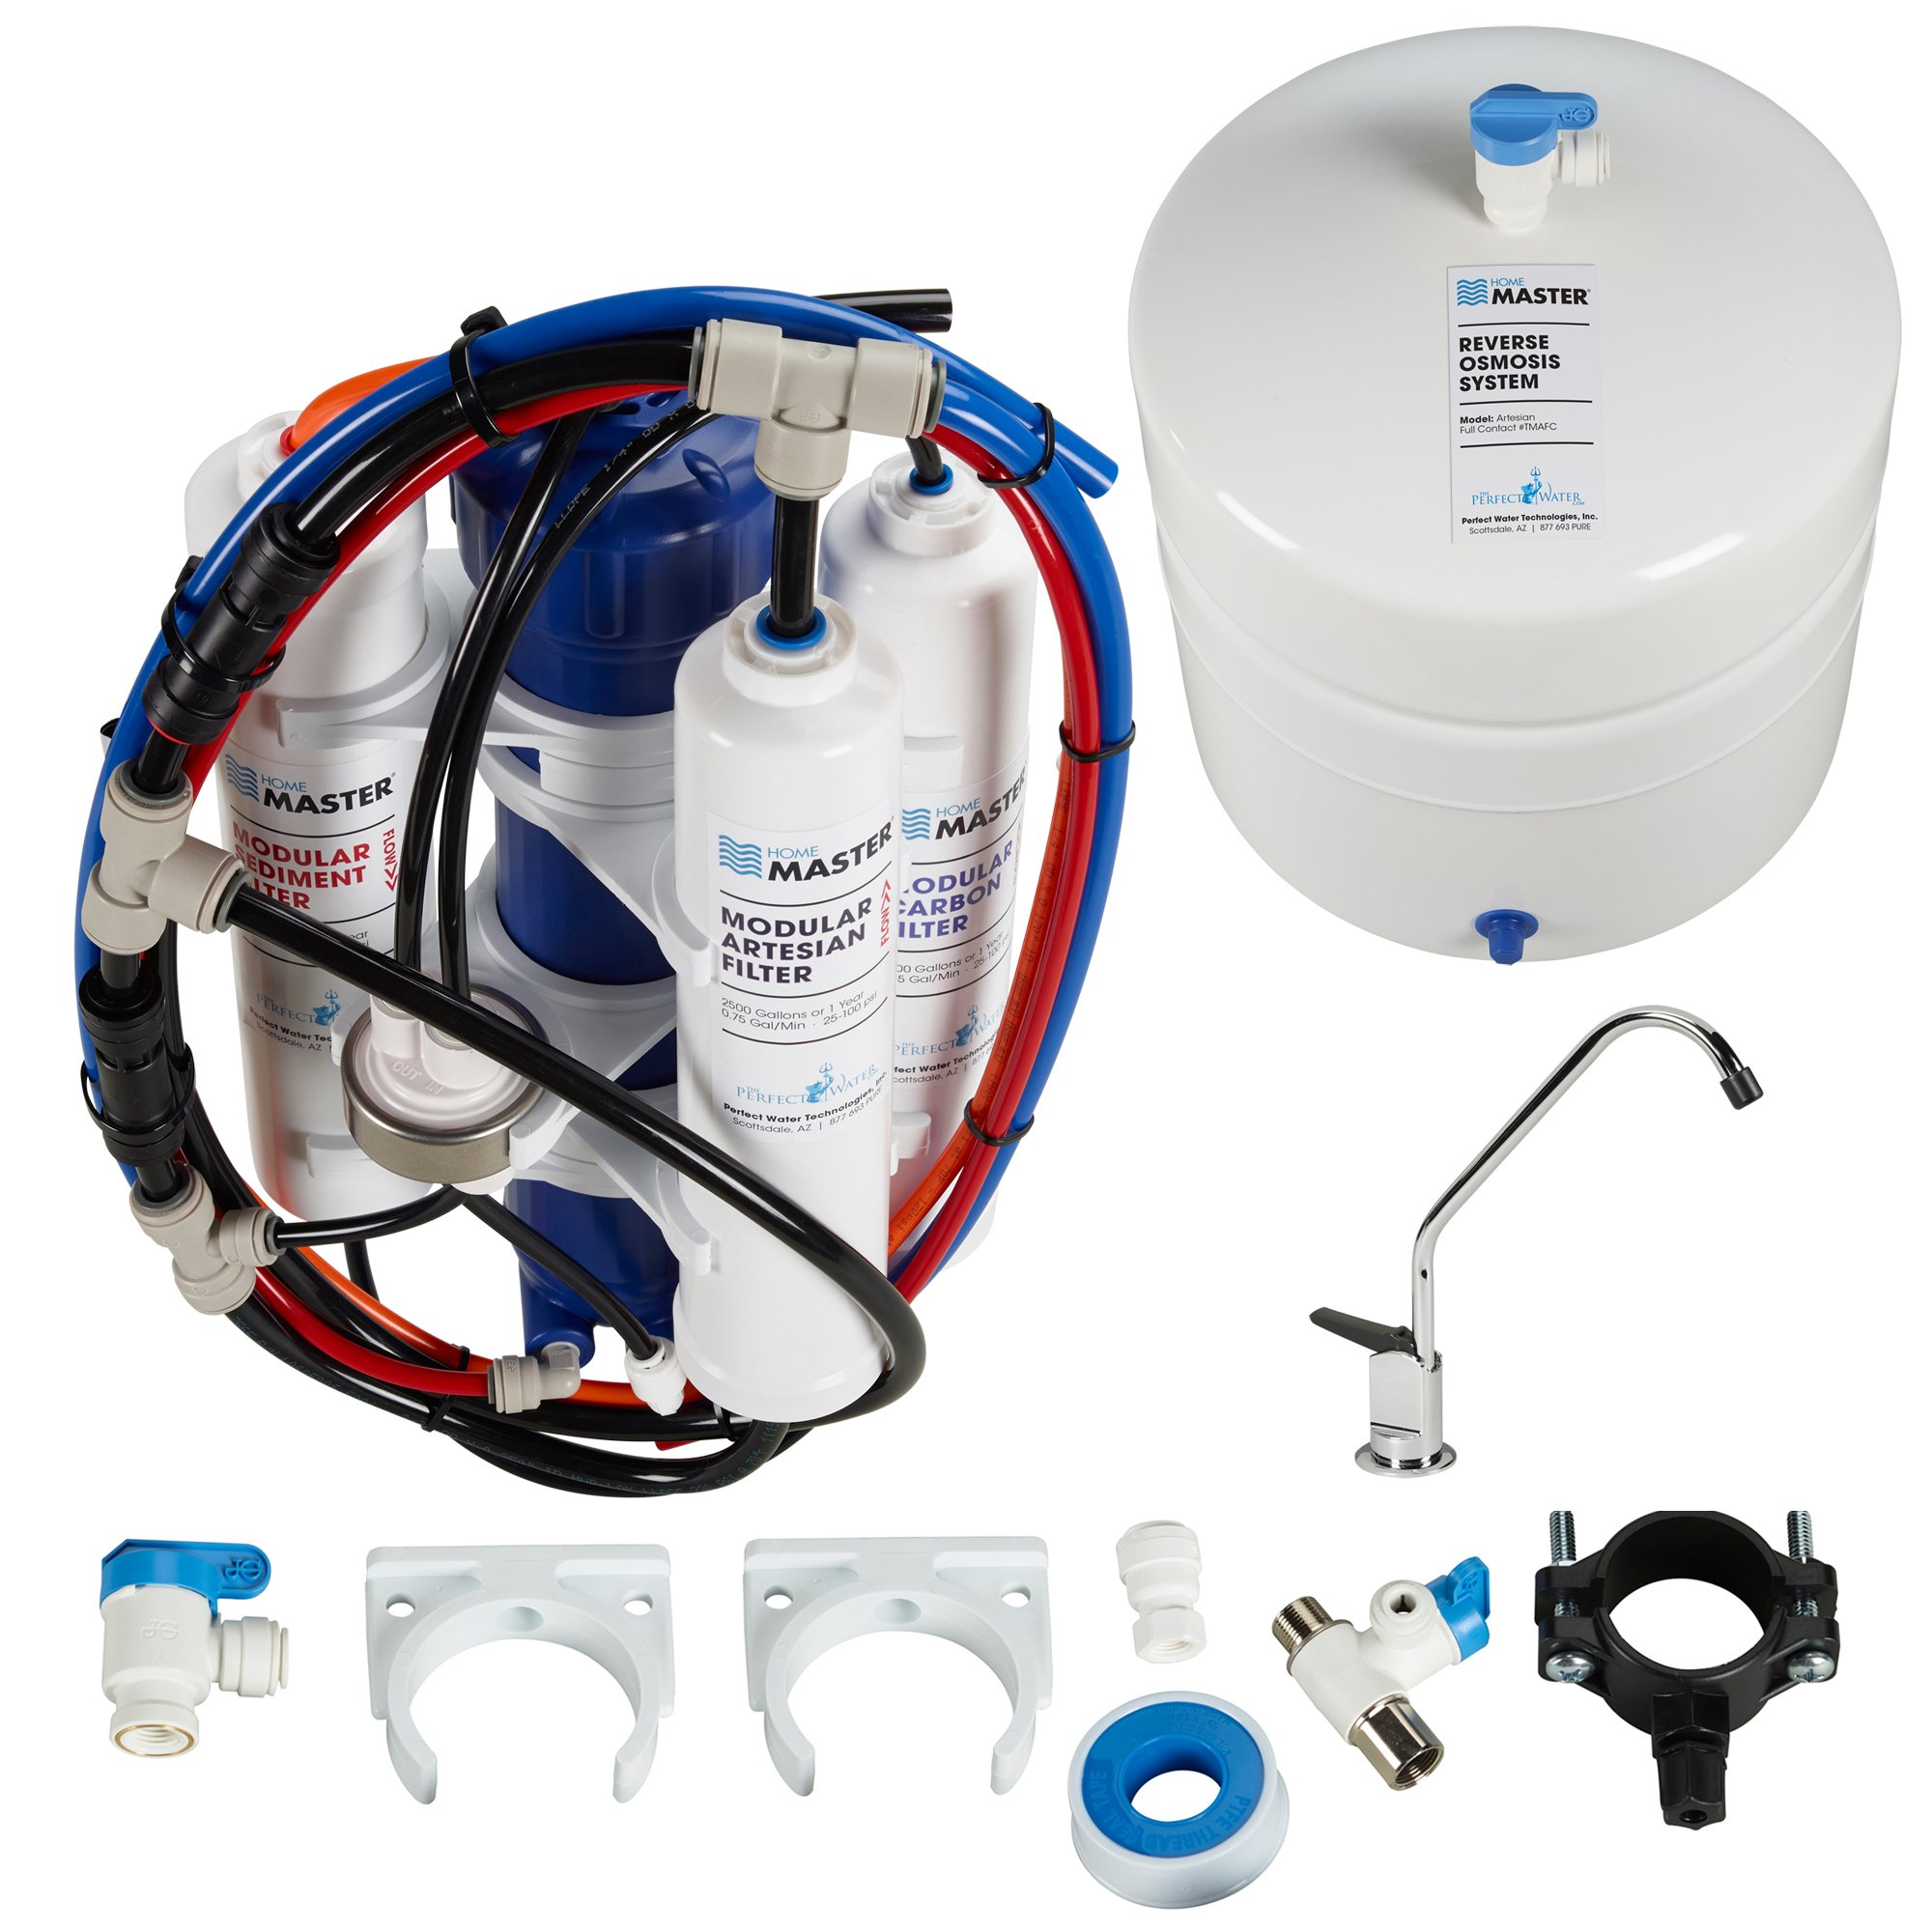 Home Master TMAFC Artesian Full Contact Undersink Reverse Osmosis Water Filter System by Home Master (Image #2)